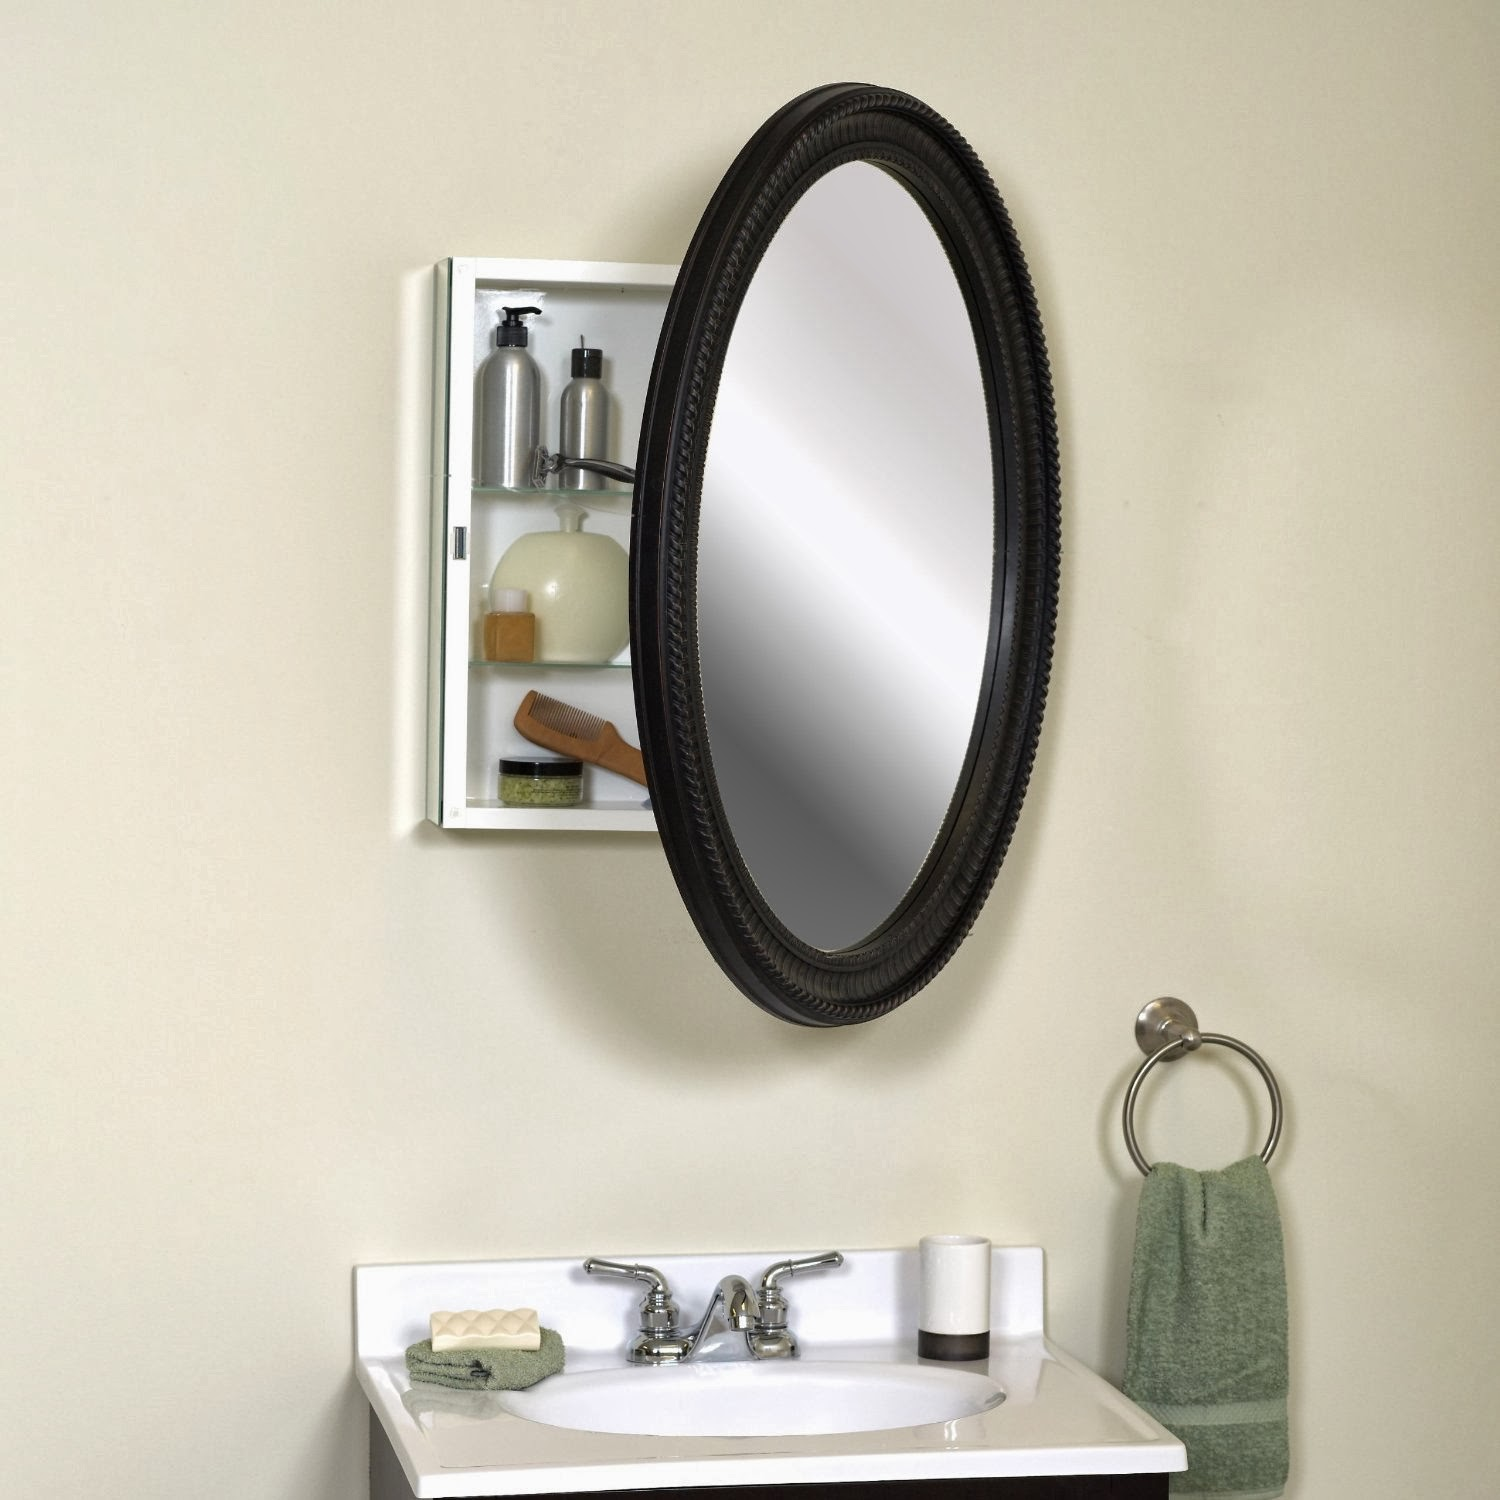 Custom lowes Medicine Cabinets plus black oval mirror and white sink with silver faucet on bathroom with white wall